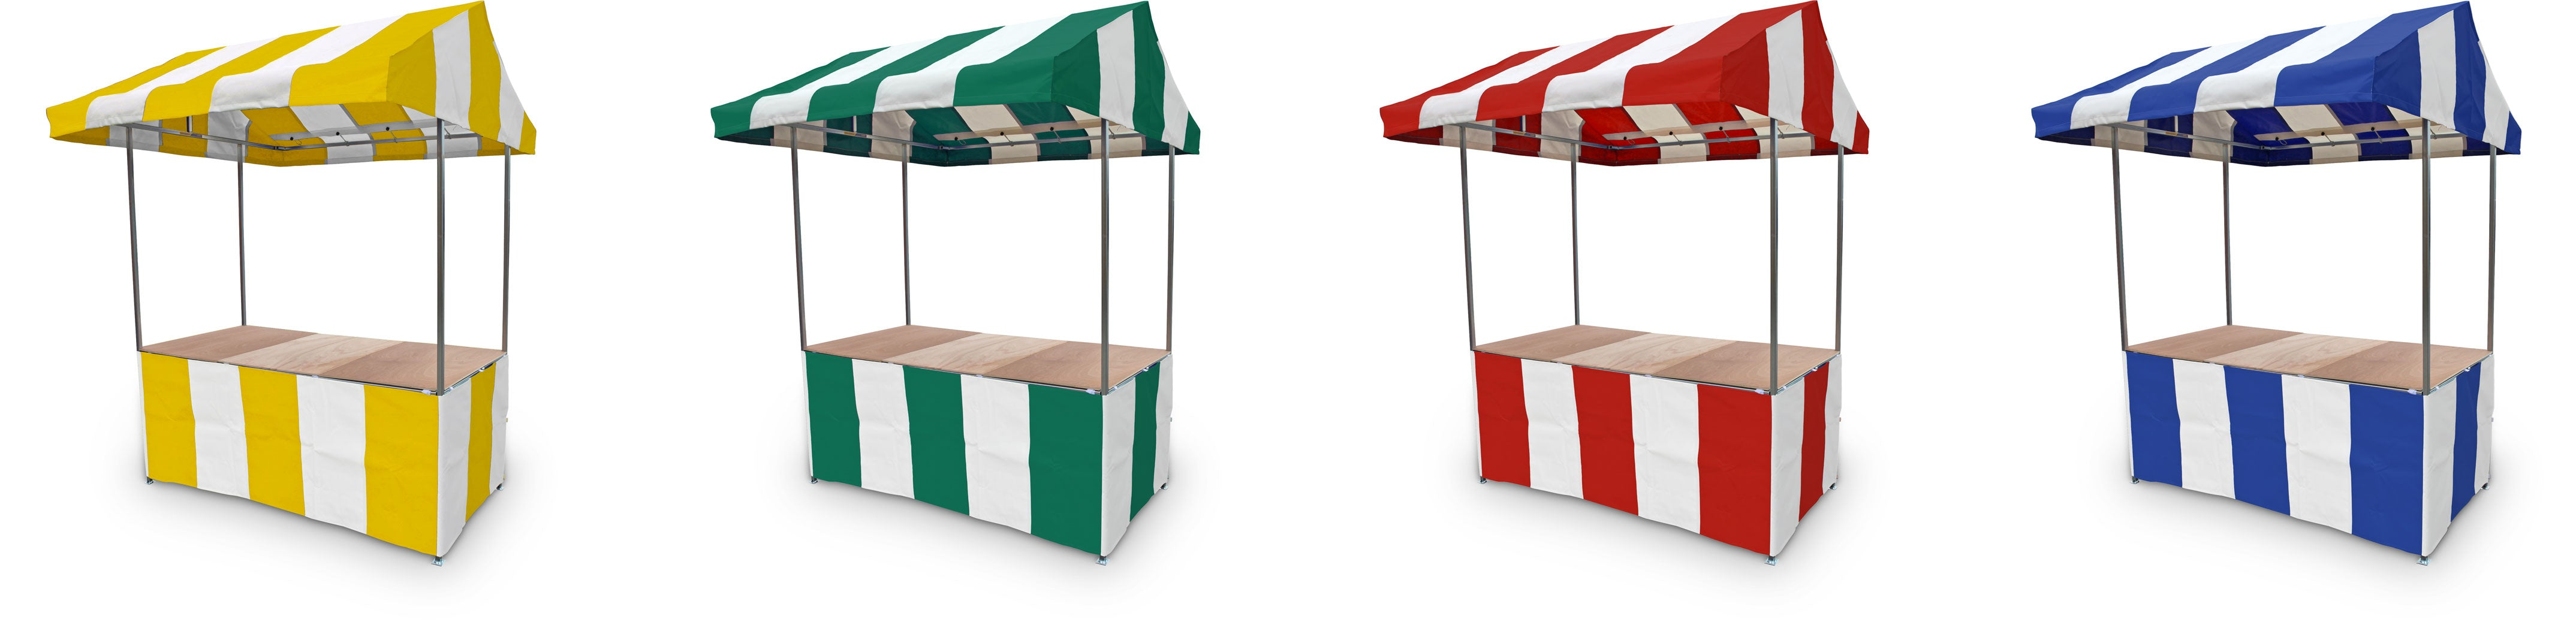 Market Stall Canopy and Counter Wrap Colour